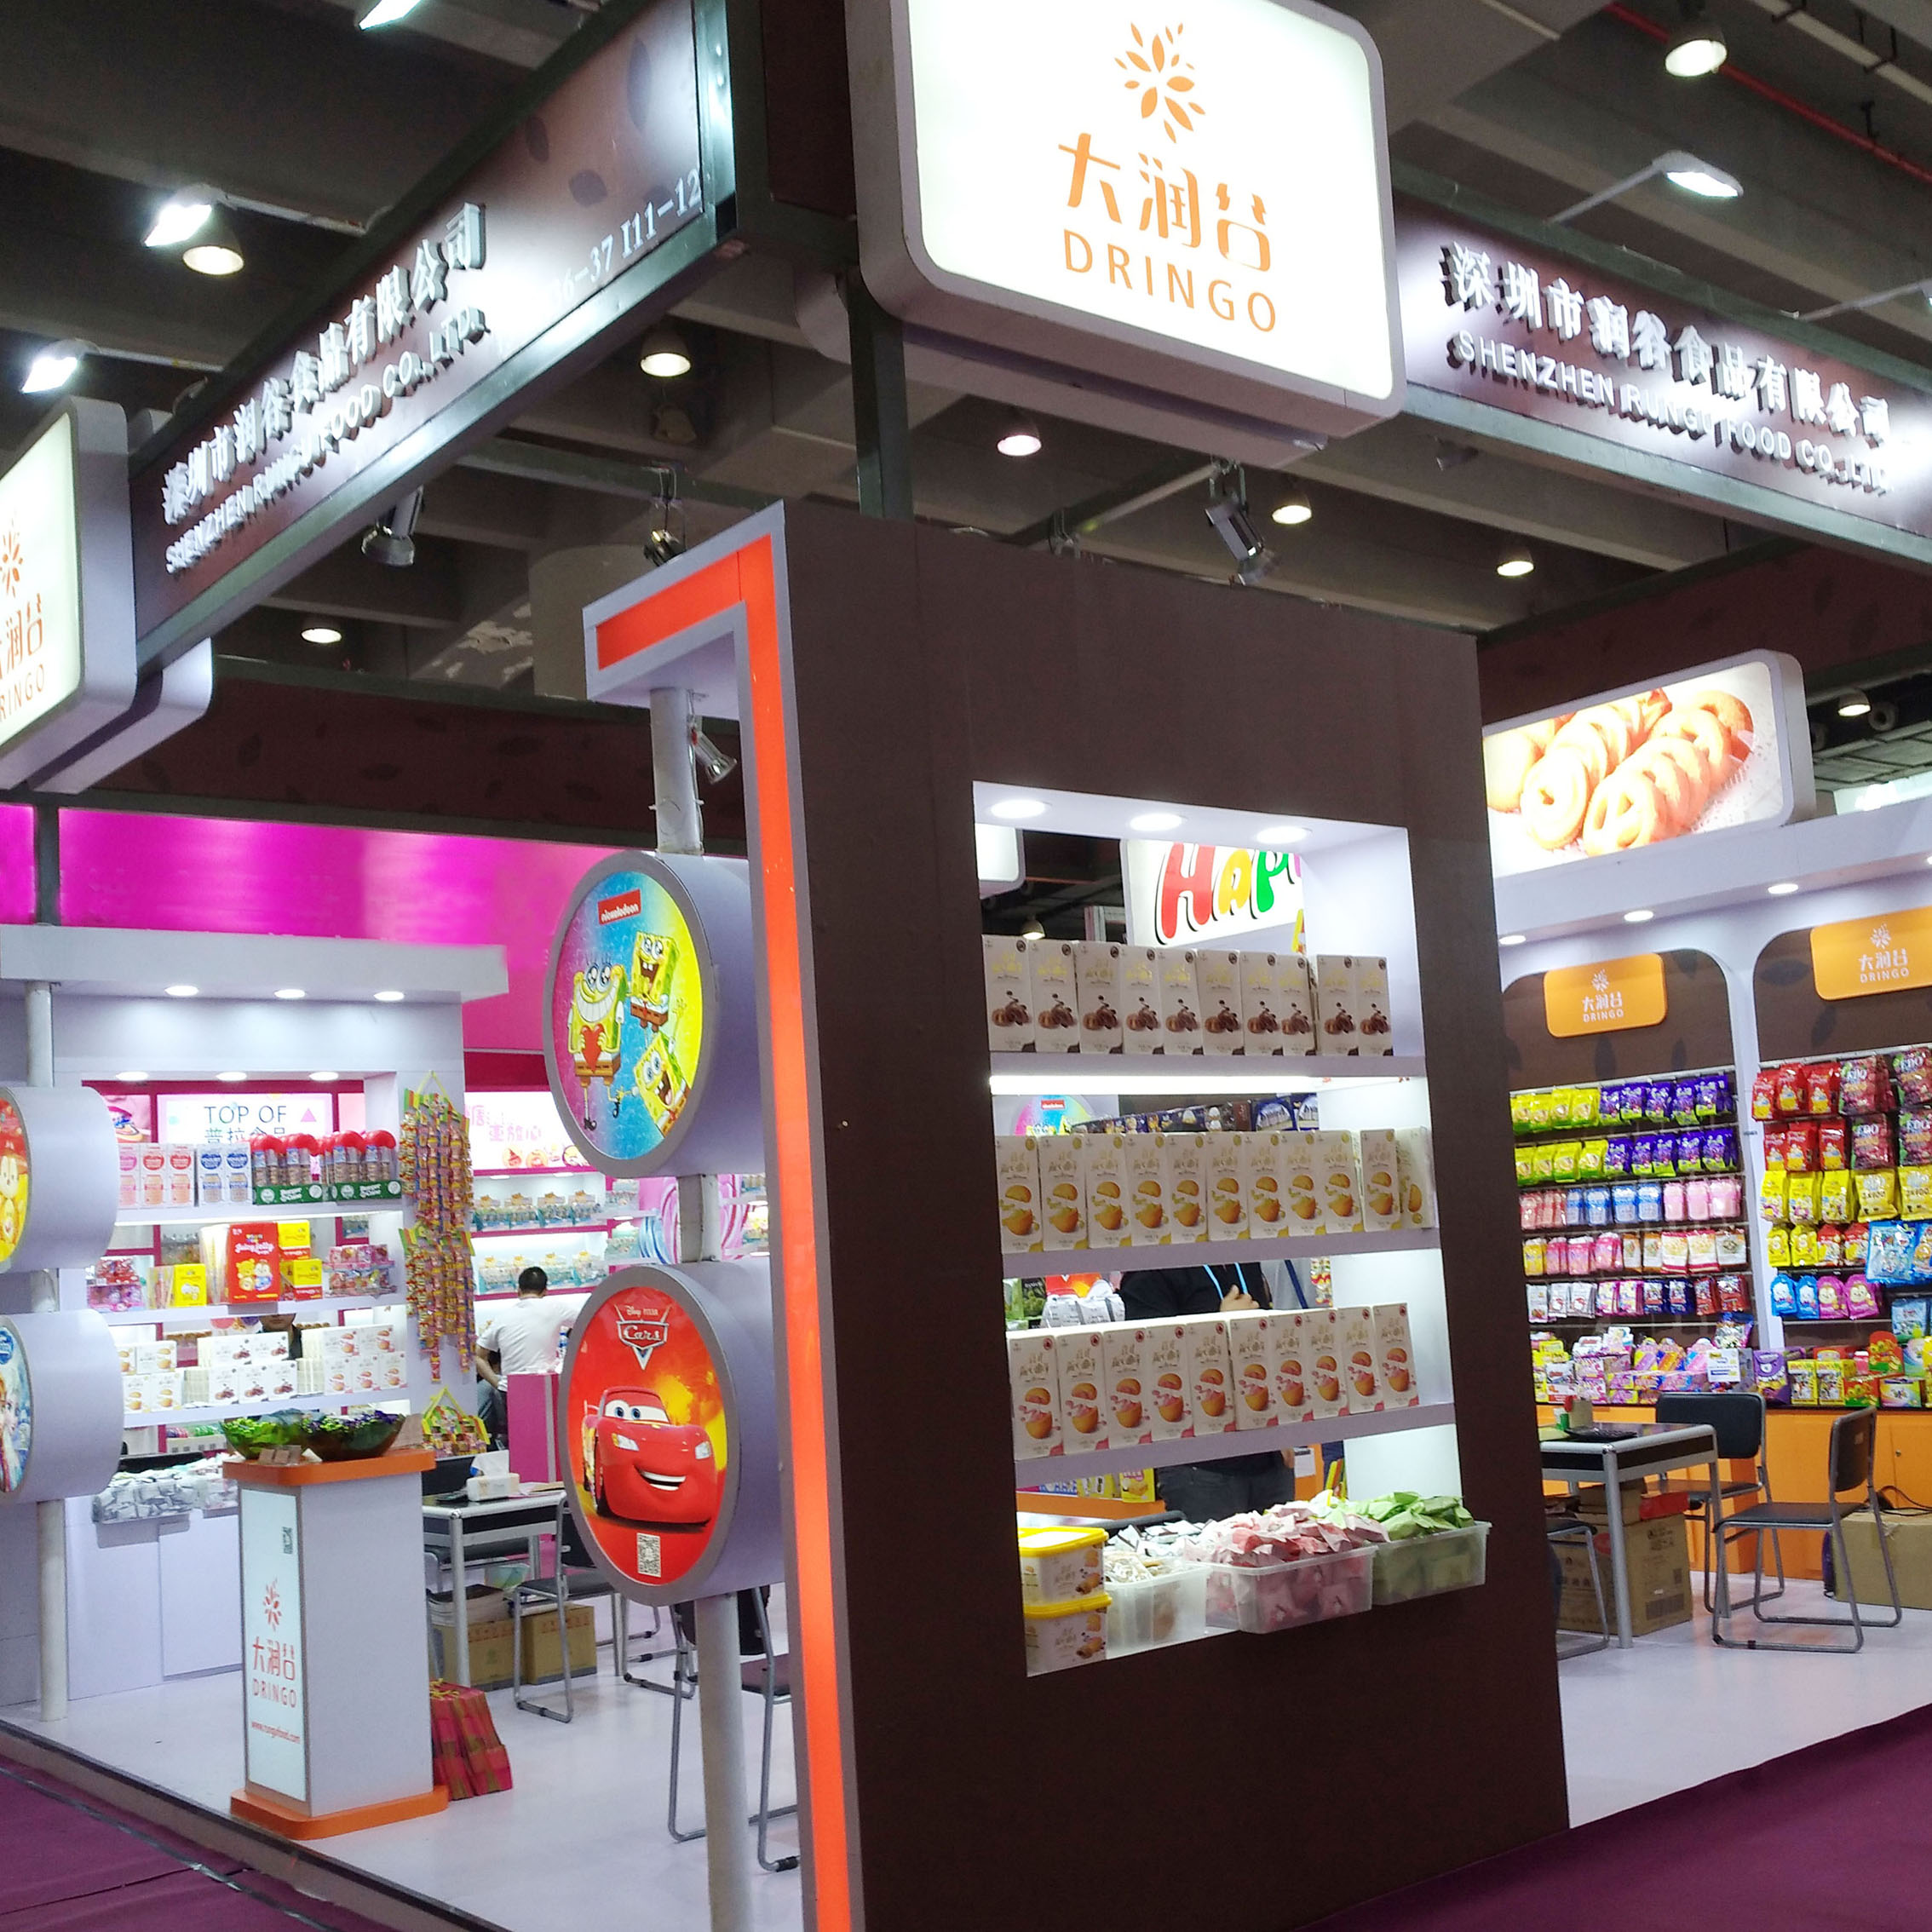 Dringo Canton Fair Butter Cookies Gummy Candie